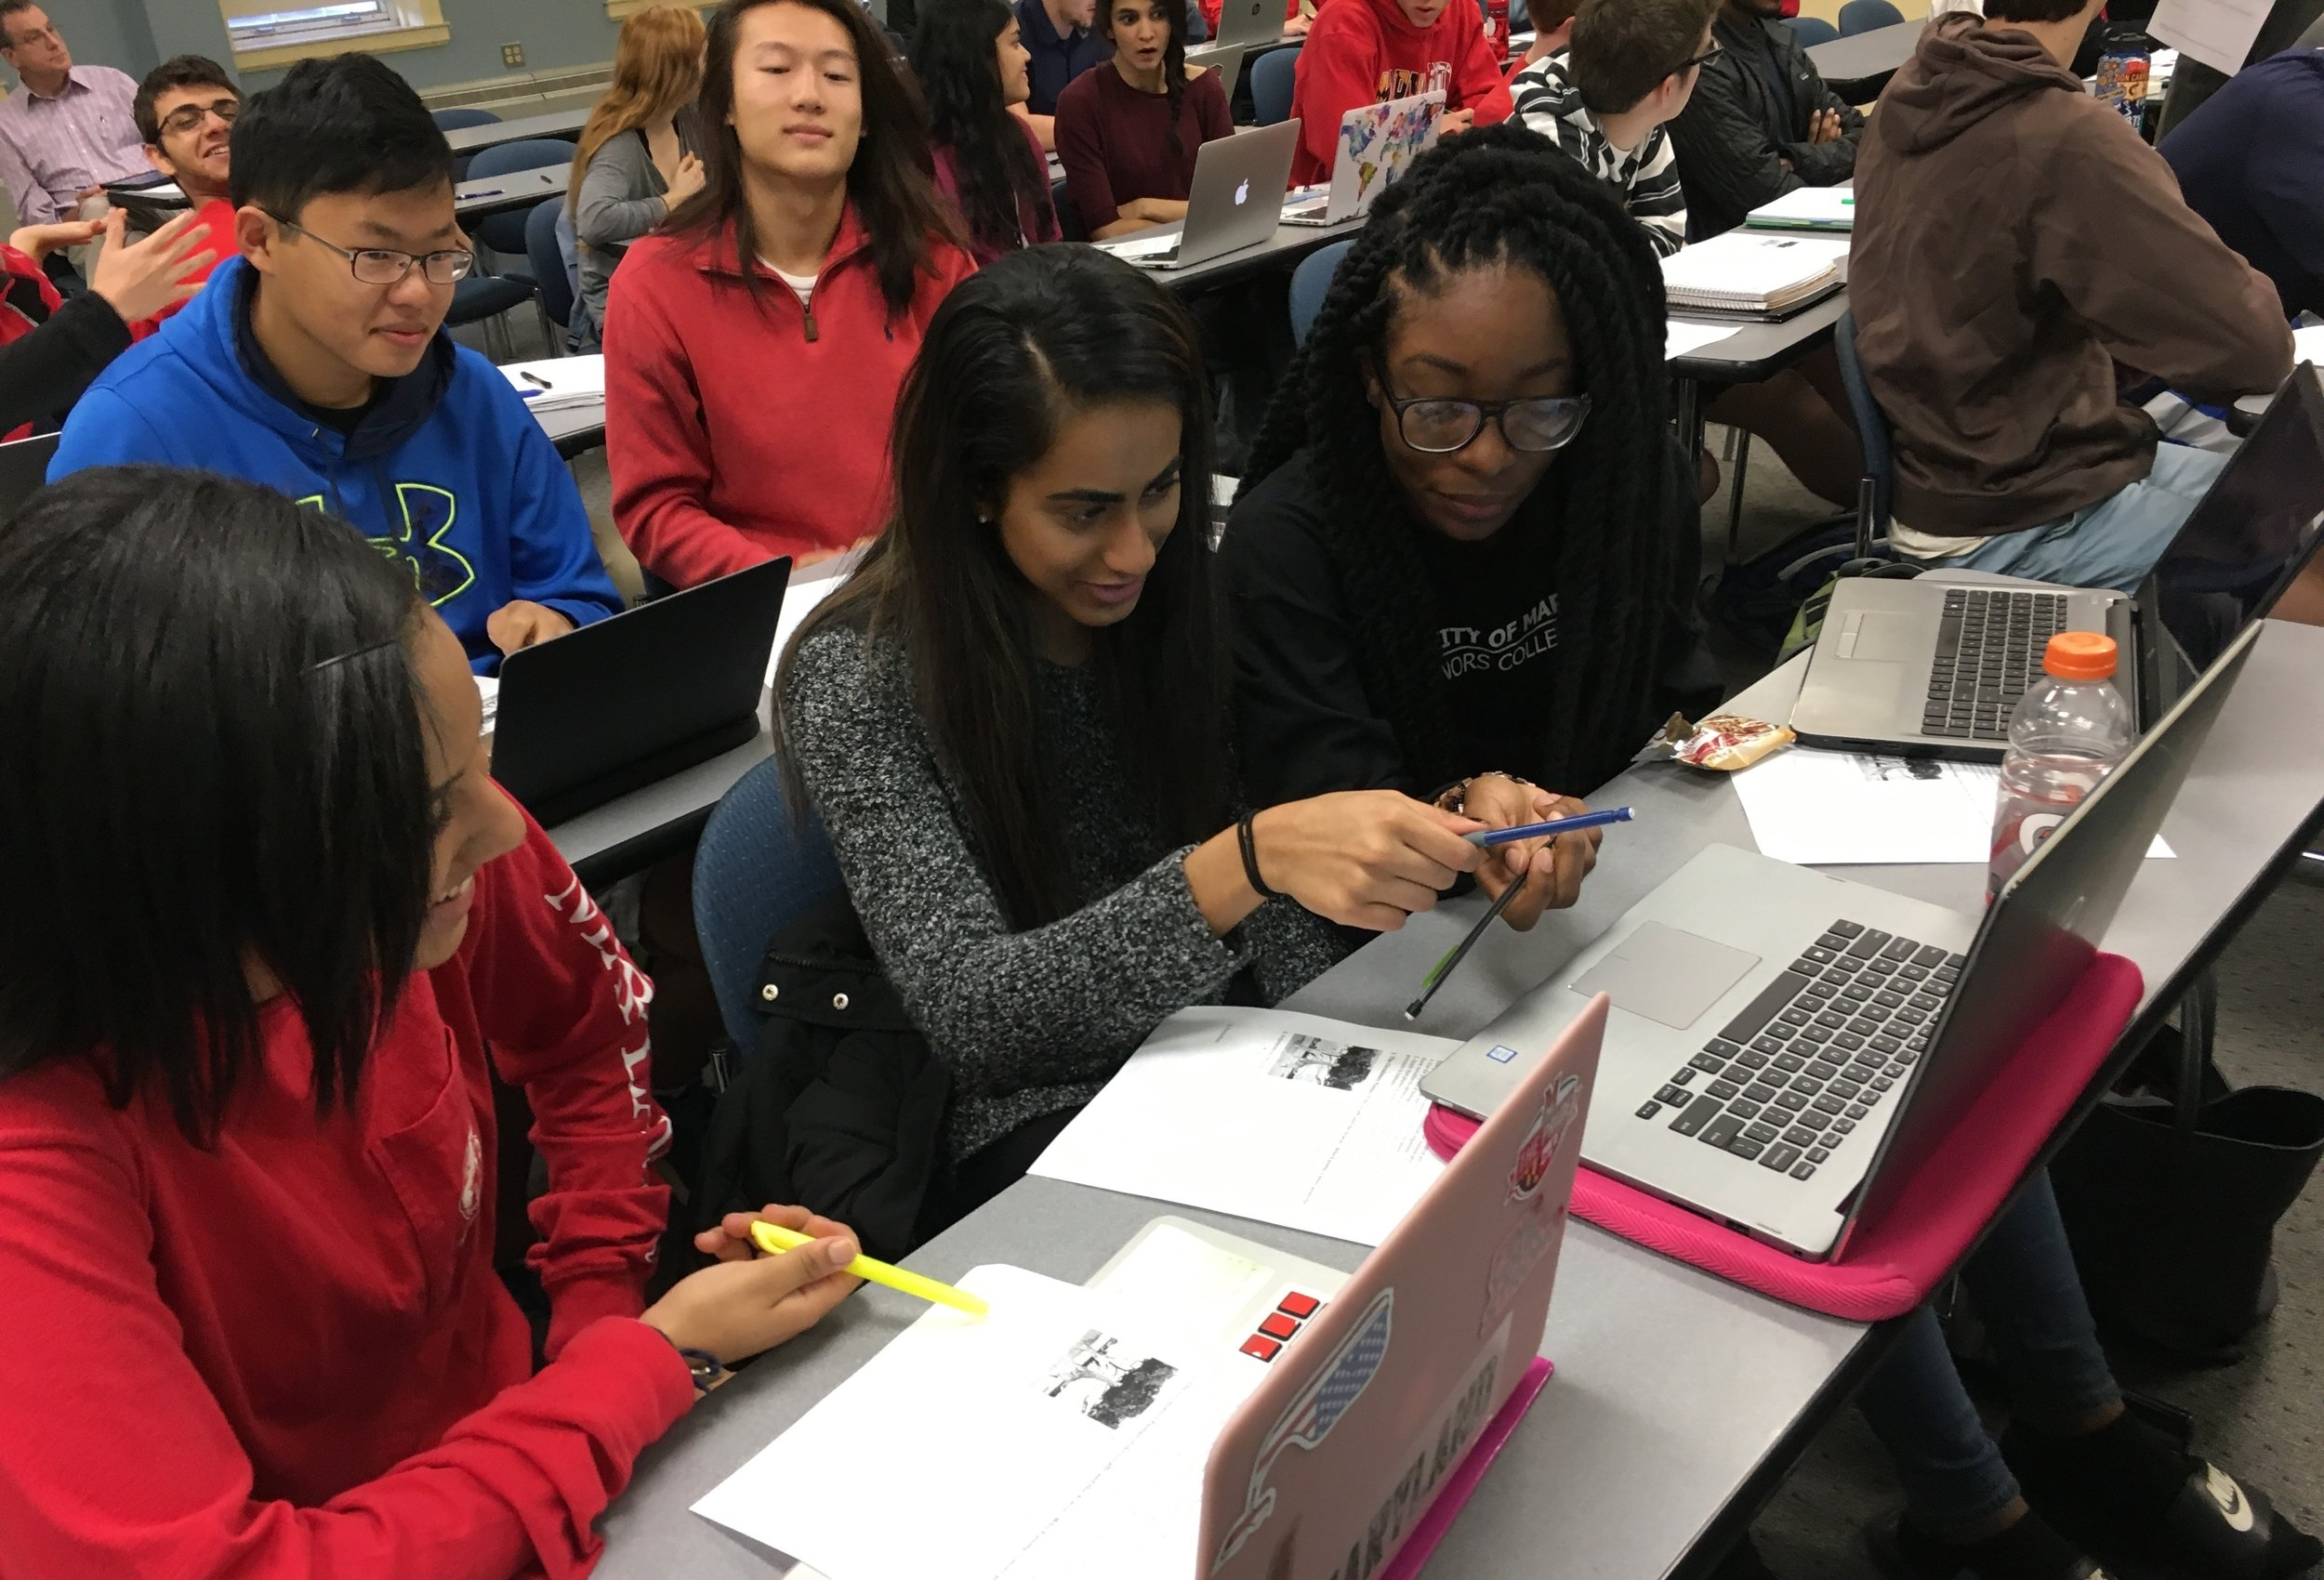 ILS students with laptops working together on a project